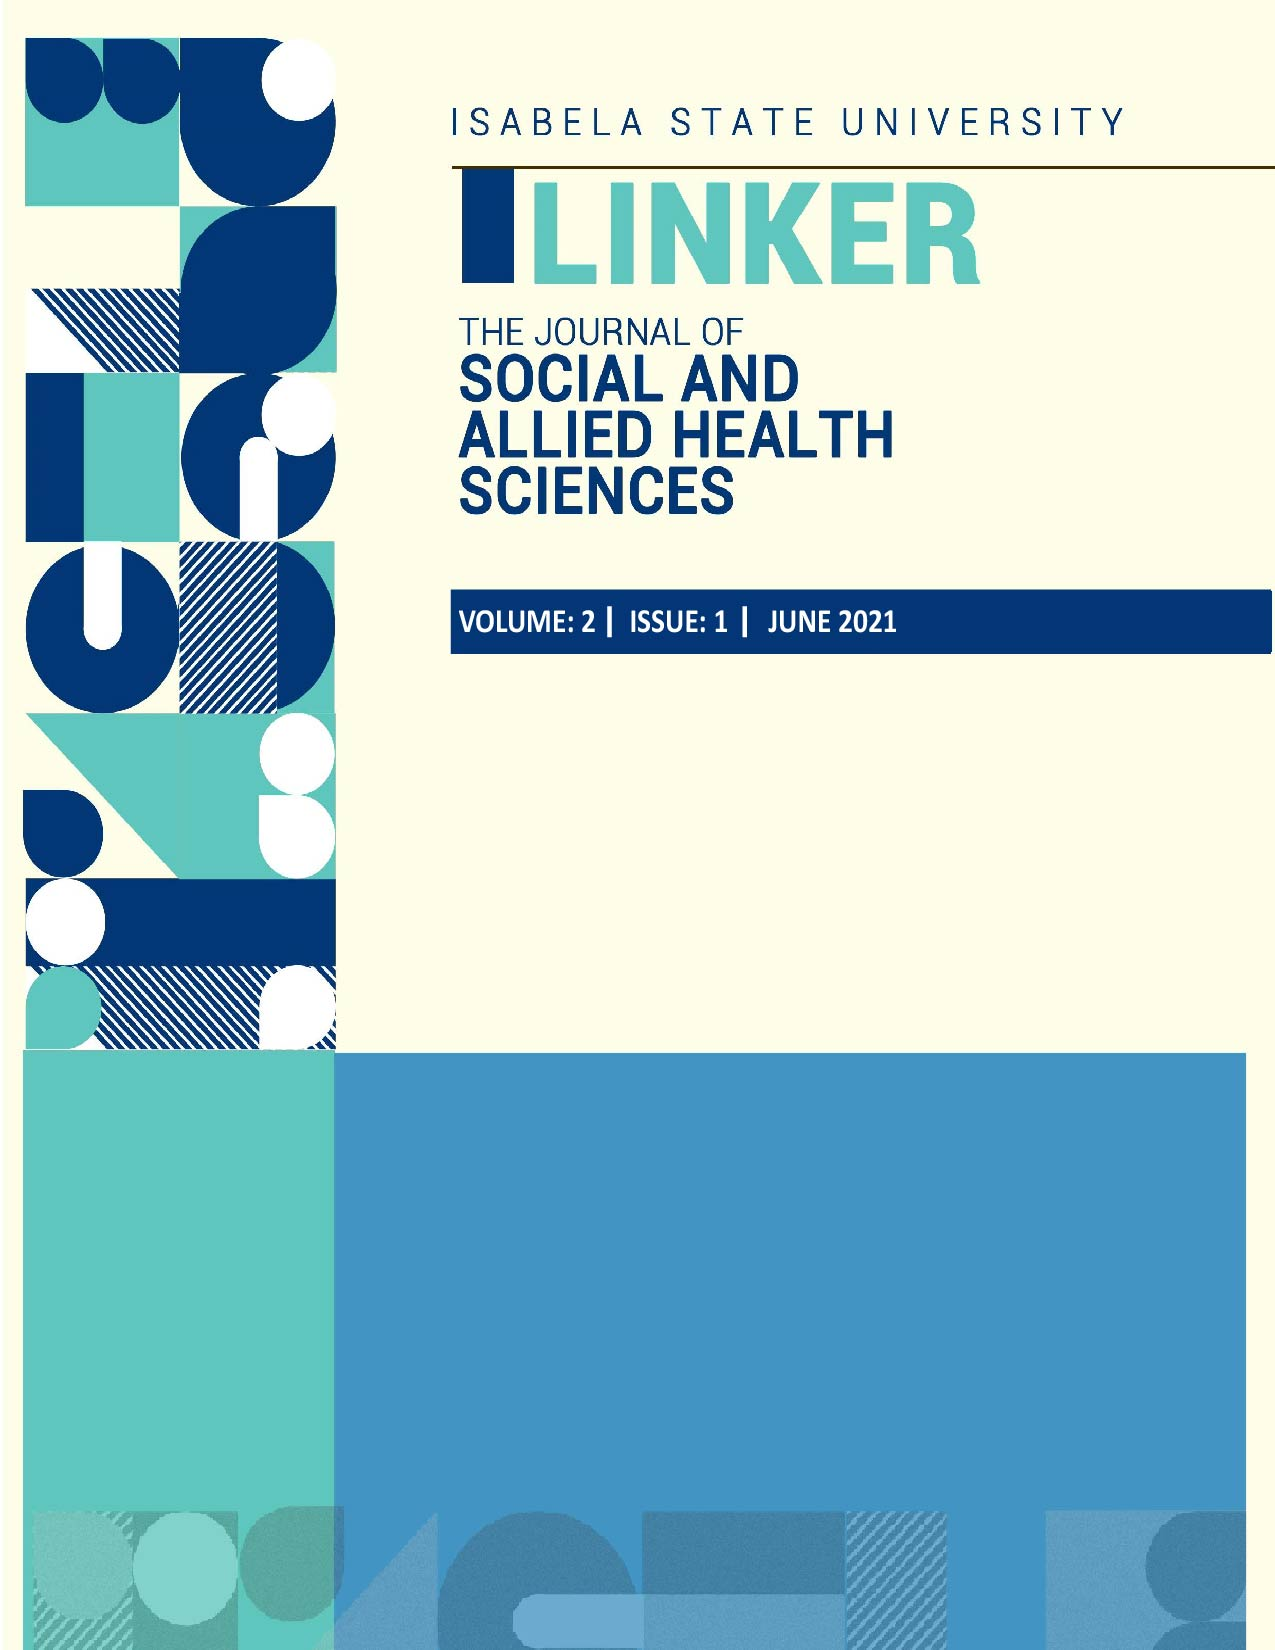 View Vol. 2 No. 1 (2021): The Journal of Social and Allied Health Sciences